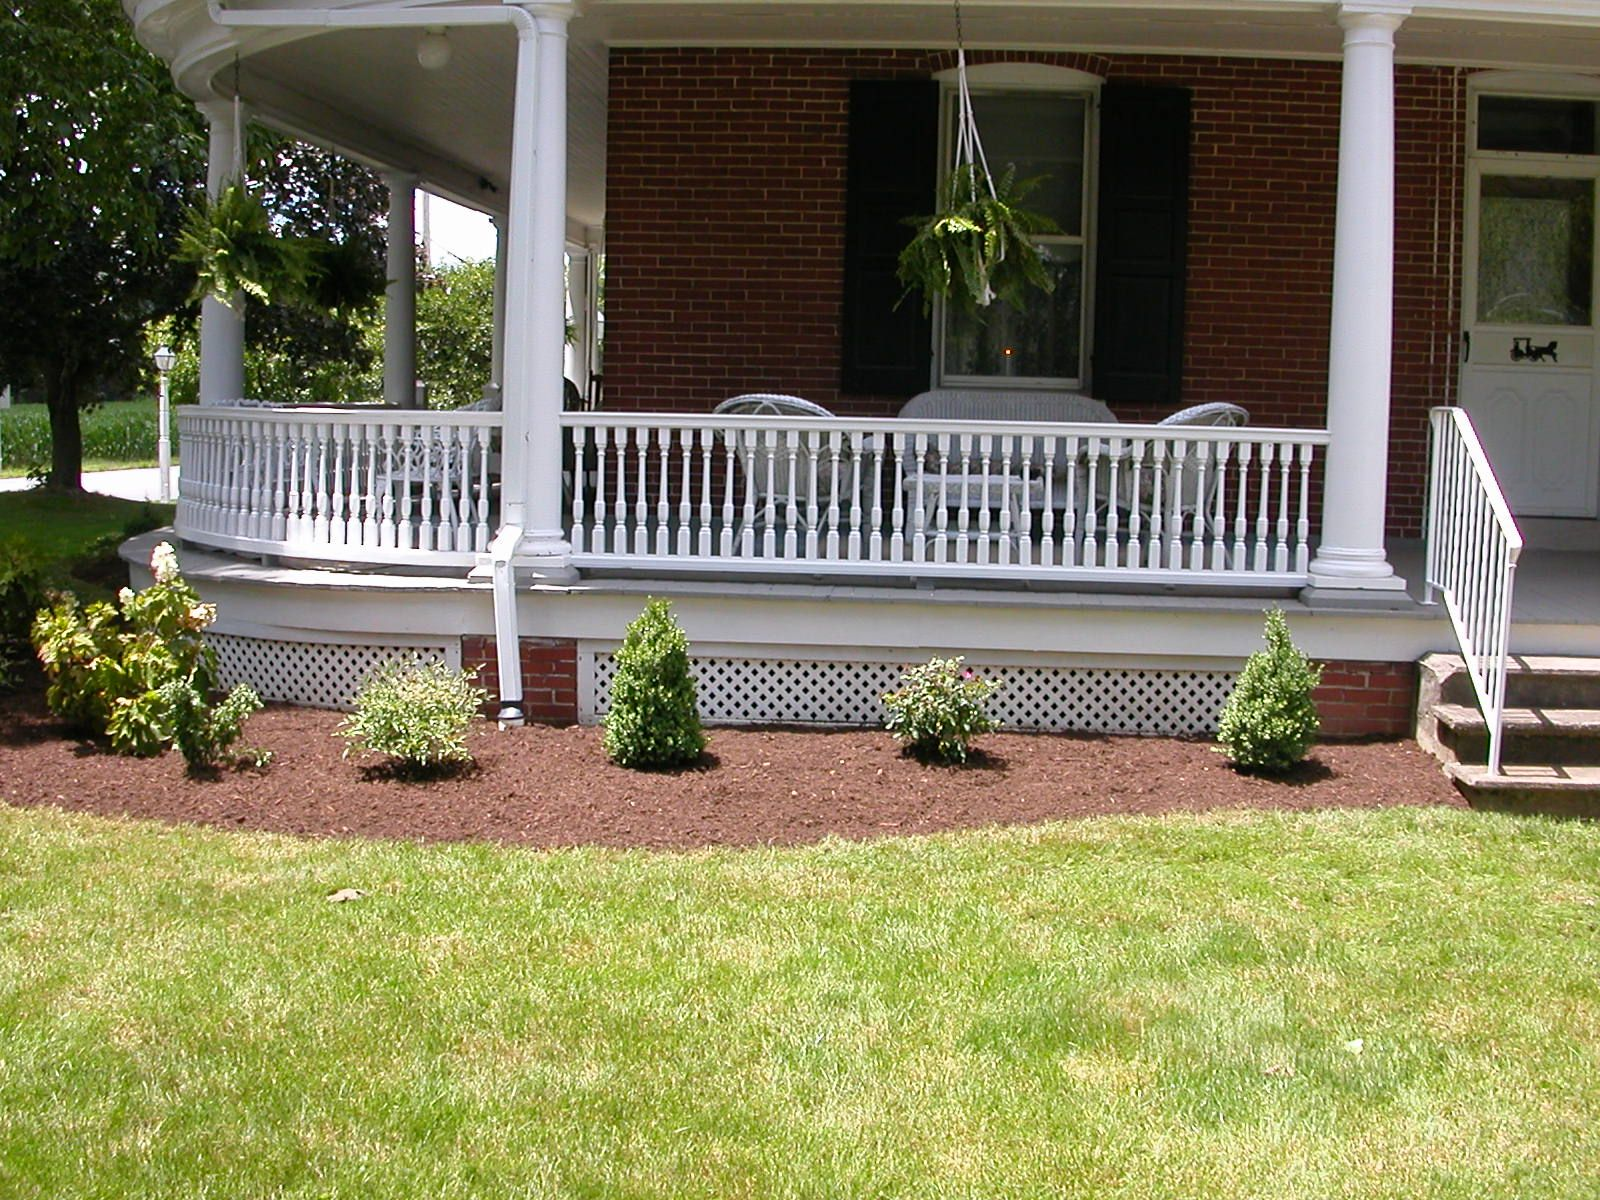 Landscaping ideas for wrap around porches our new for Front porch landscaping ideas